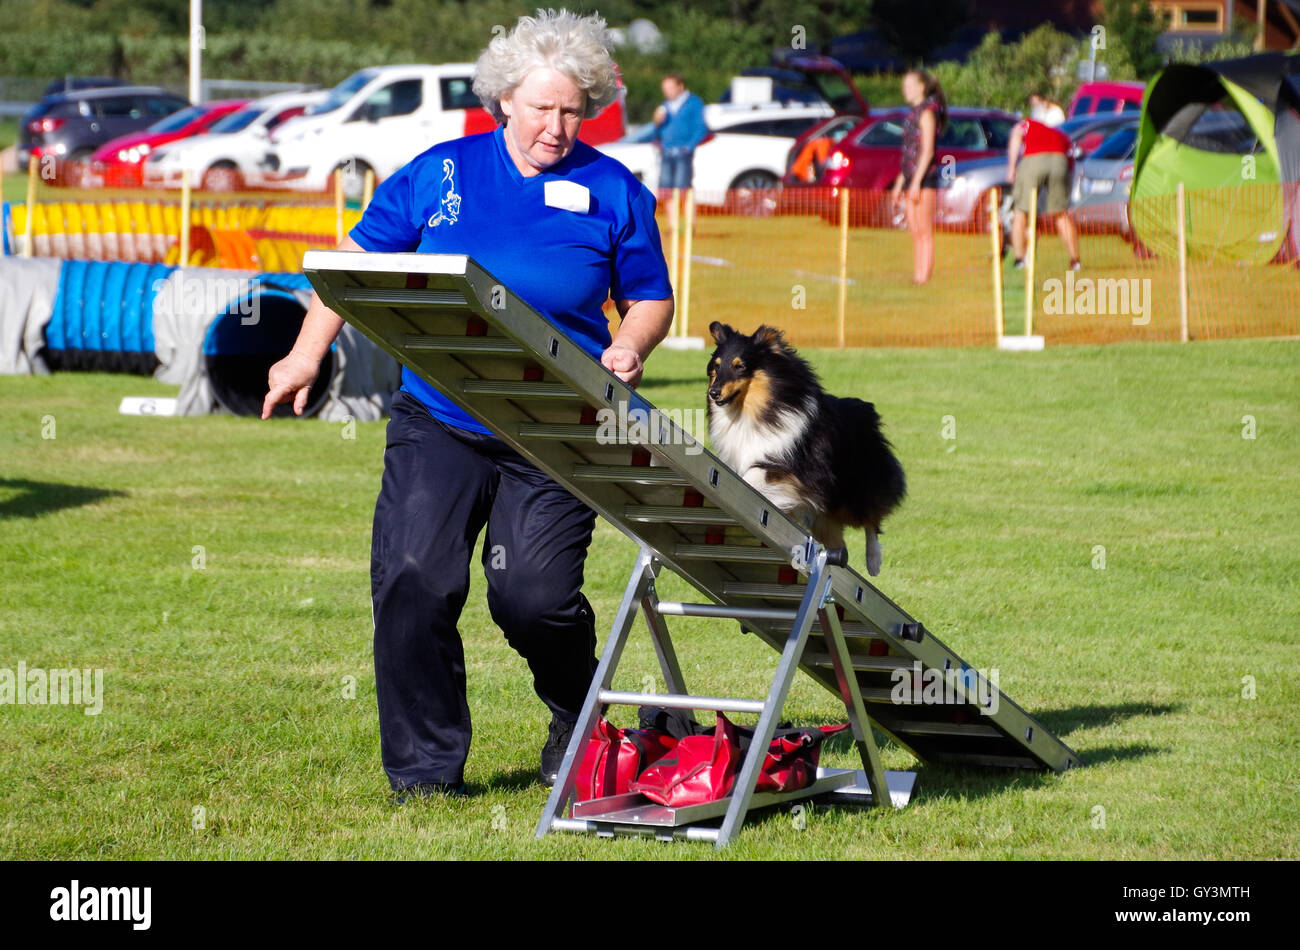 A competitor in dog agility competitions with her sheltie on the swing - Stock Image